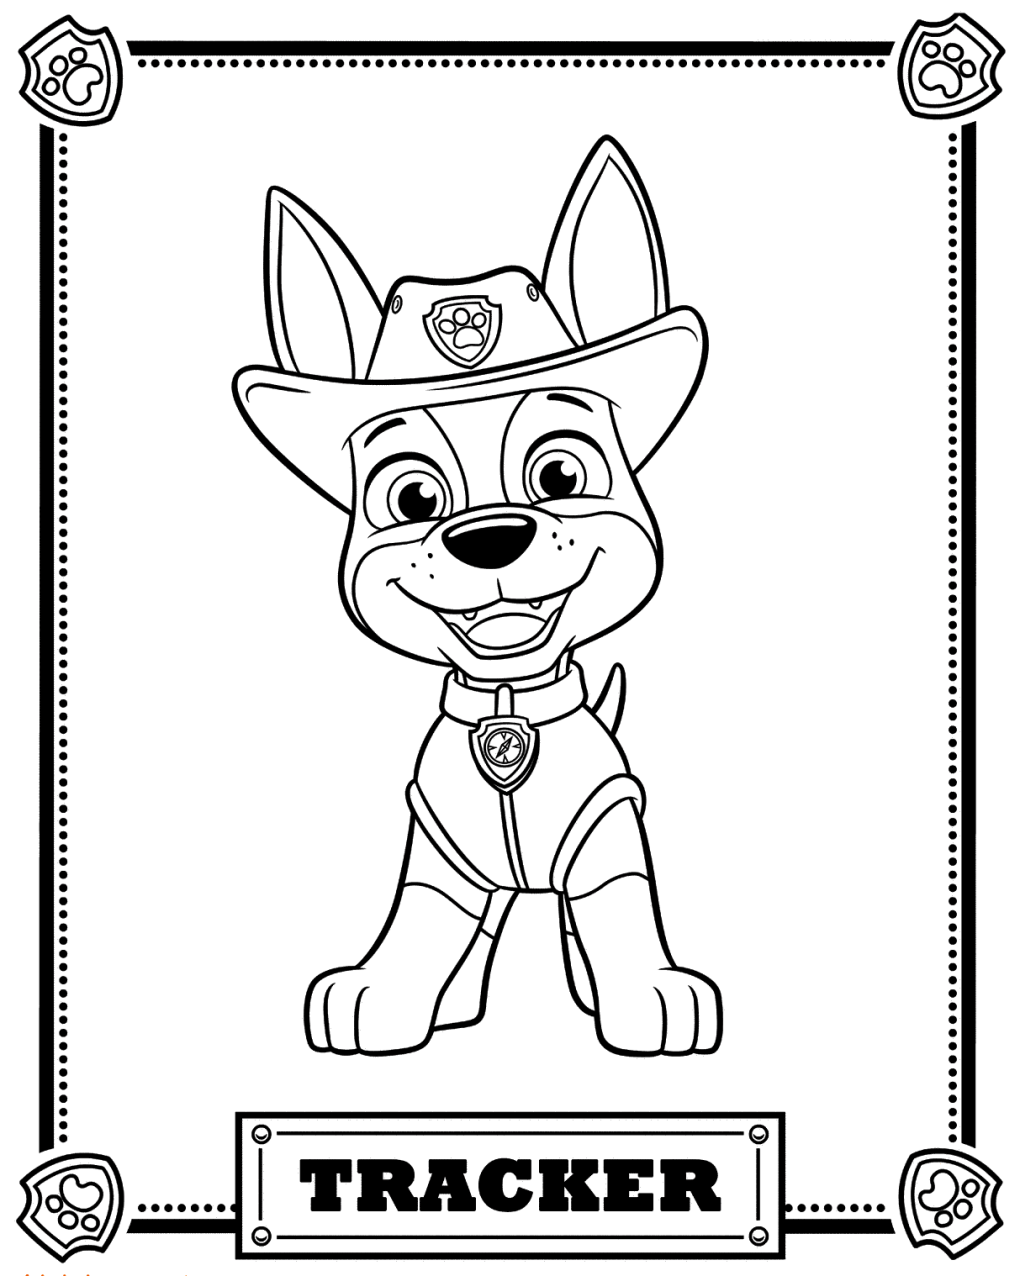 Top 10 Paw Patrol Coloring Pages In 2021 Paw Patrol Coloring Pages Paw Patrol Coloring Paw Patrol Printables